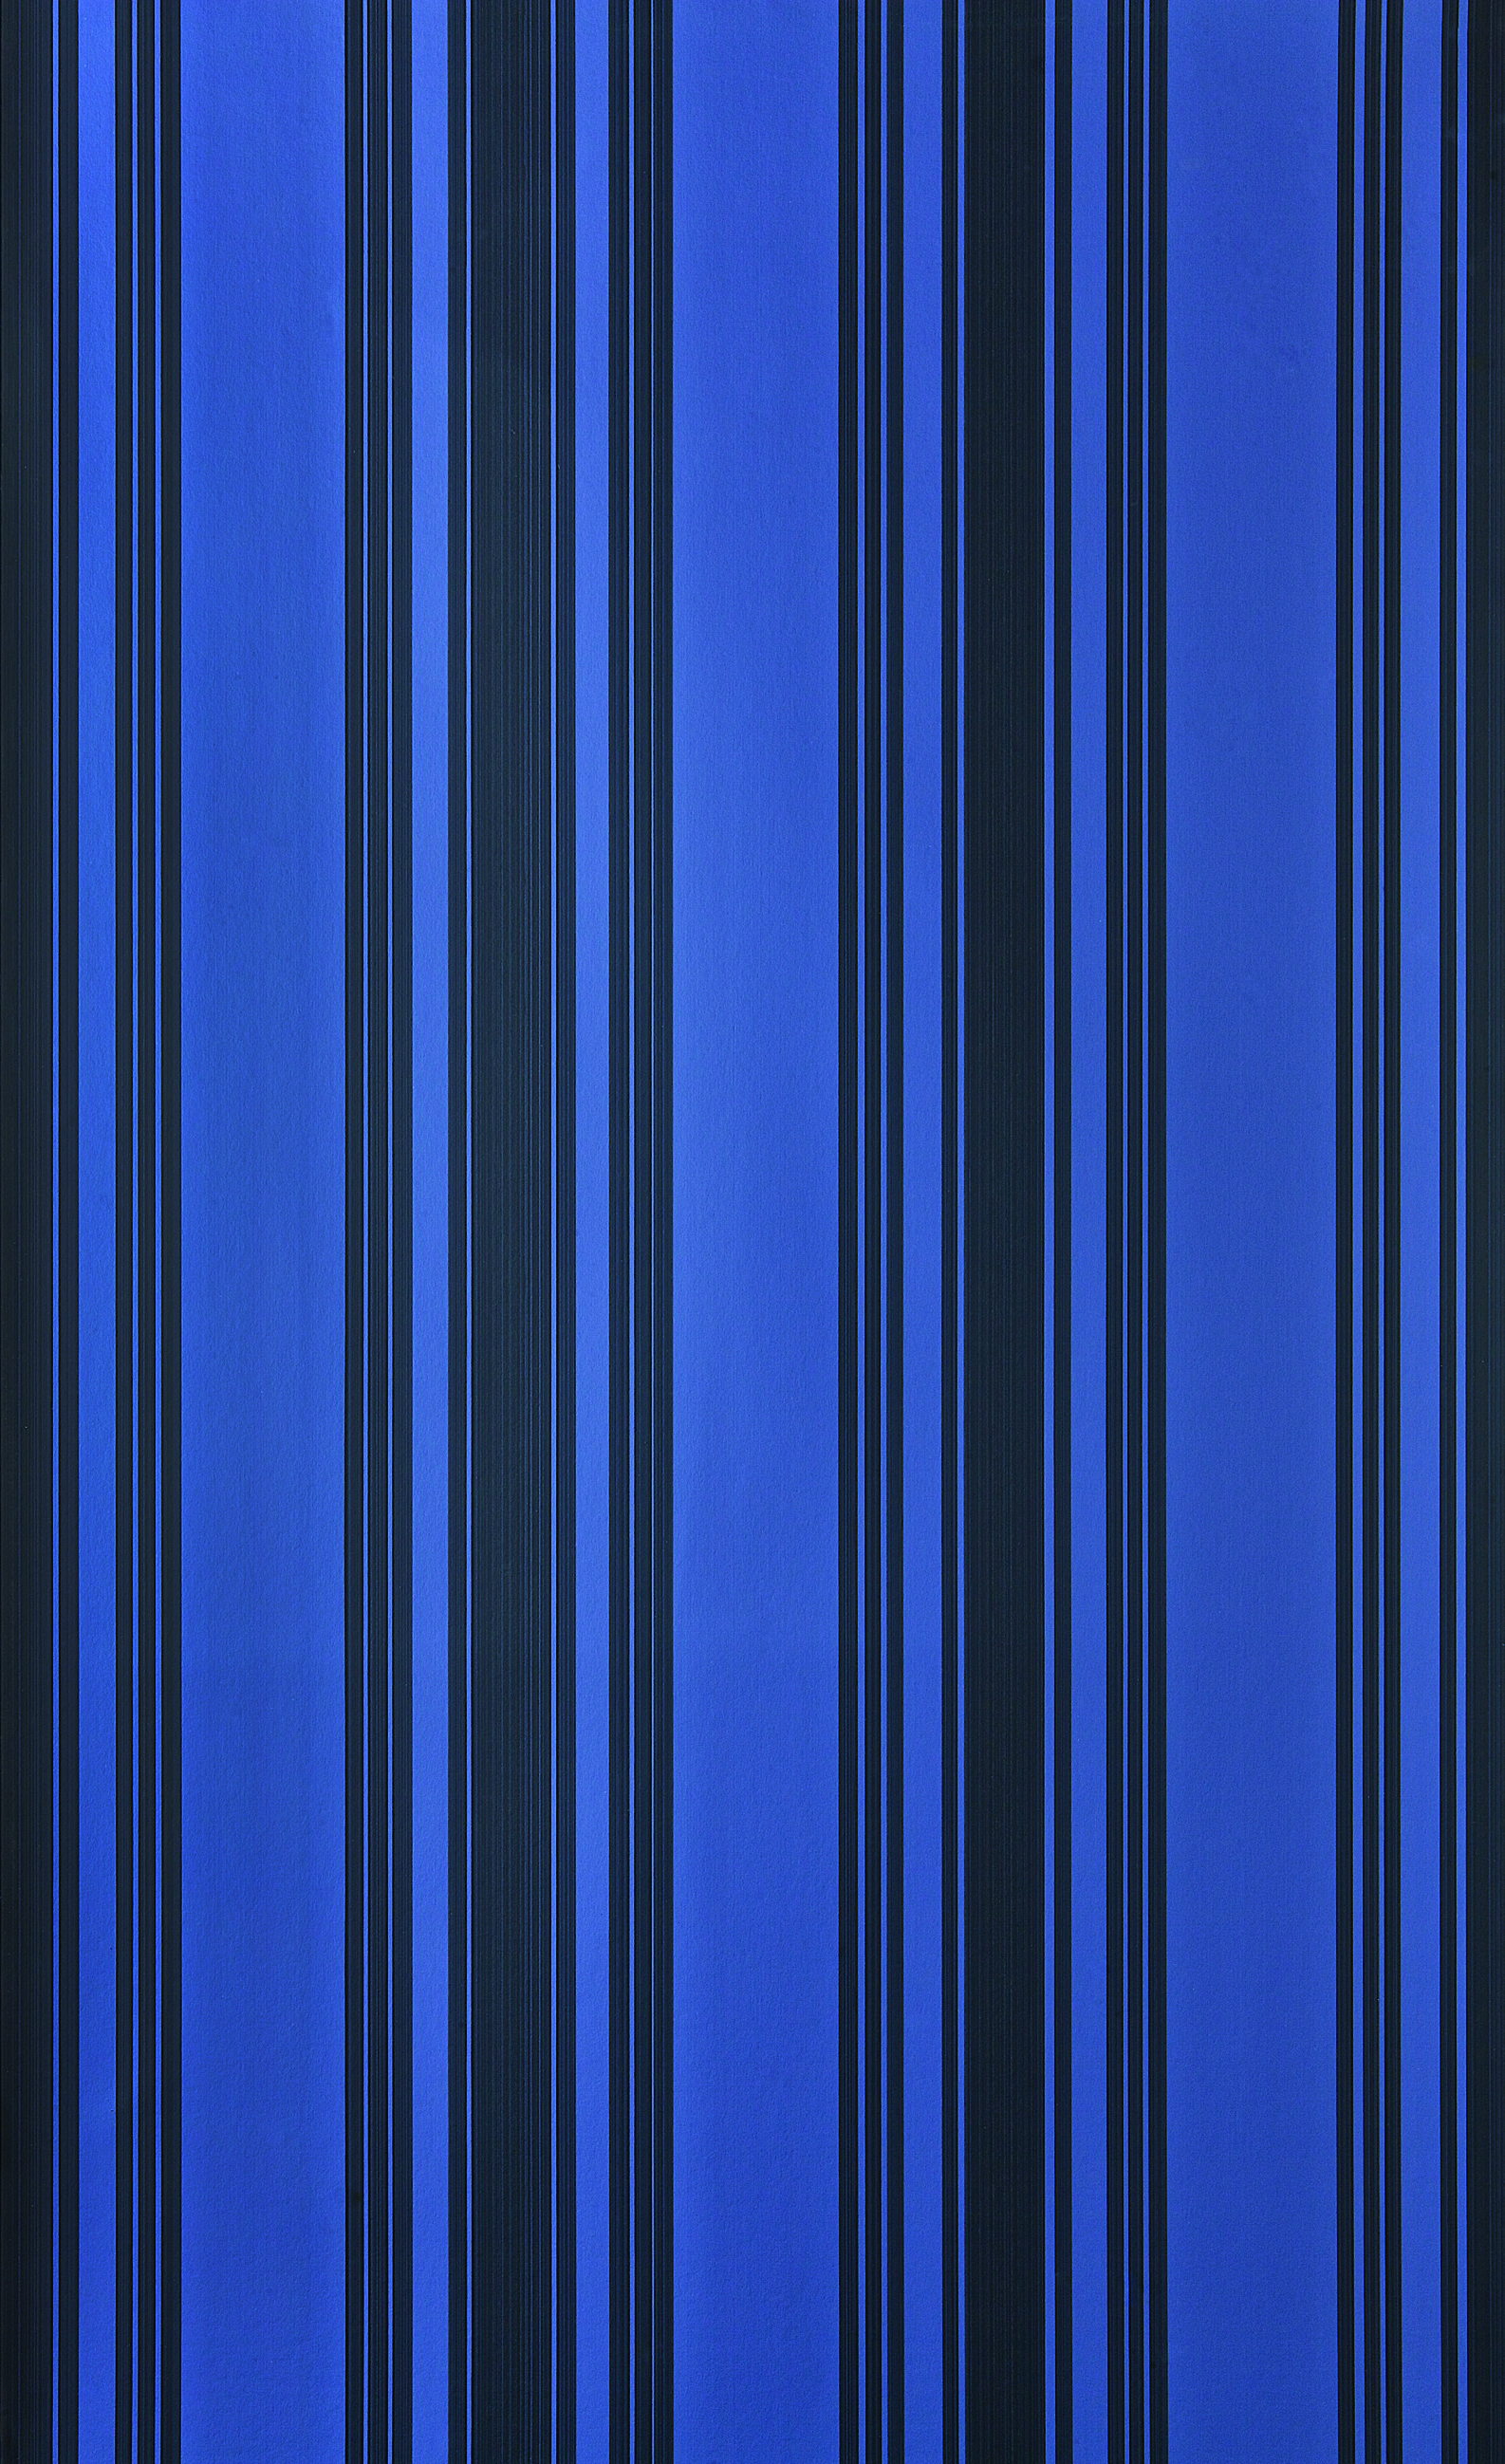 Tented Stripe 13113 $195 Per Roll  Order Now